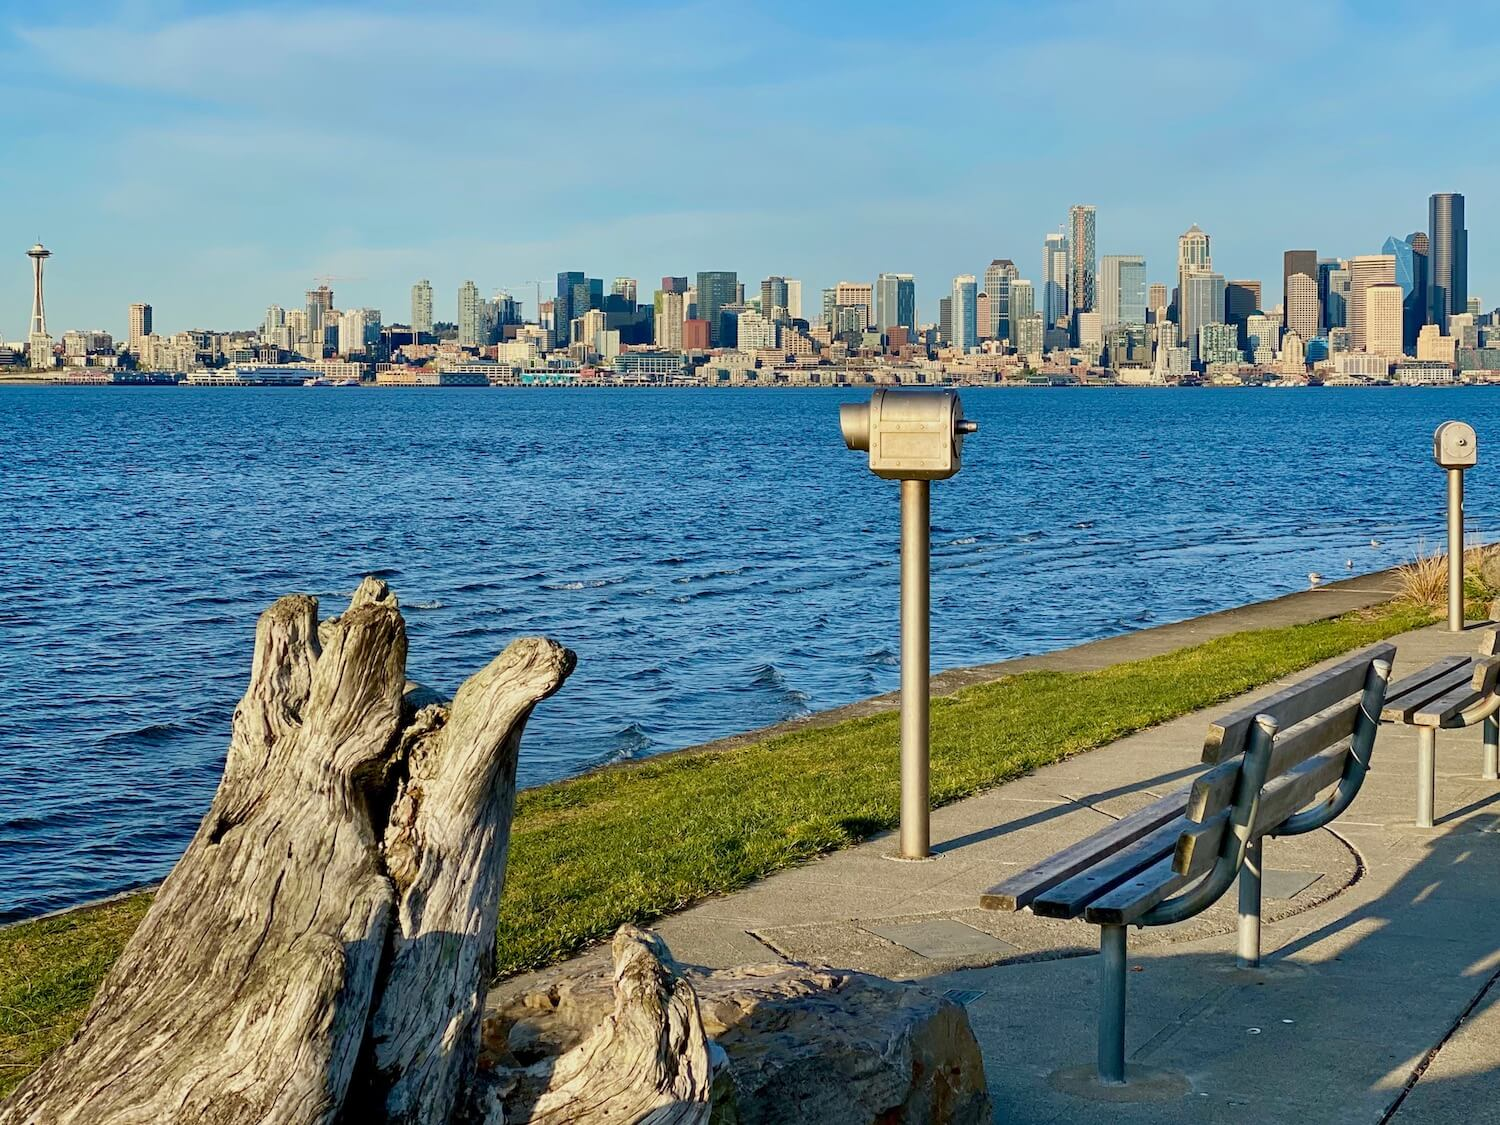 Alki Beach and West Seattle offer sweeping views of the city and this shot shows the skyline from the Space Needle to the tallest black building, Columbia Center. The city is across Eliot Bay, which is a rich blue color. In the foreground is a large piece of driftwood as well as two silver telescopes and two slatted benches.